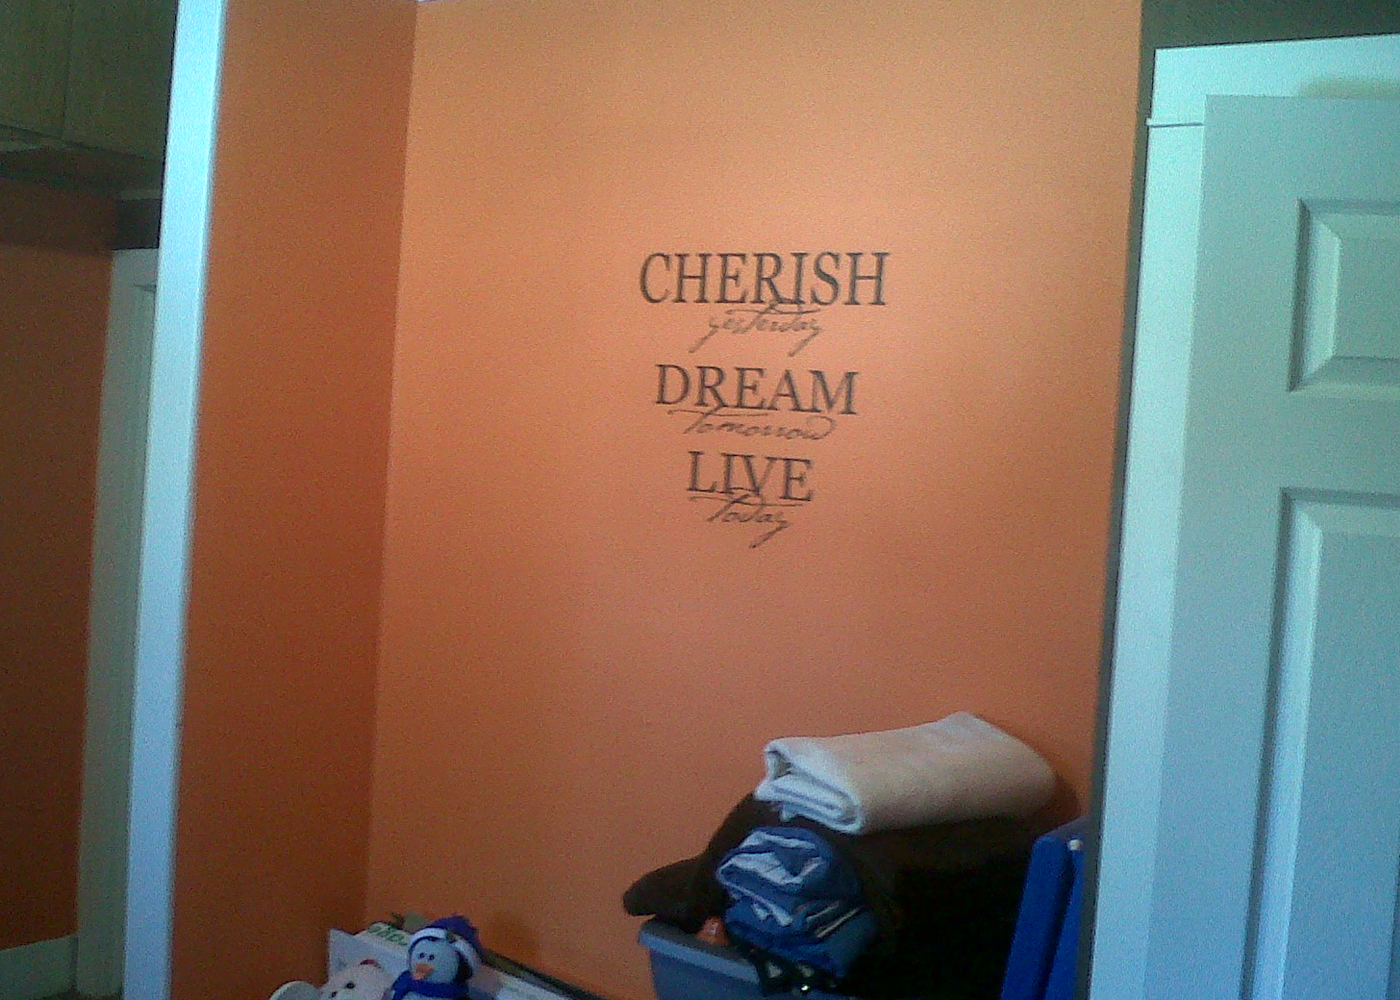 l001-cherish-vinyl-wall-decal-quote-for-home-decor.jpg